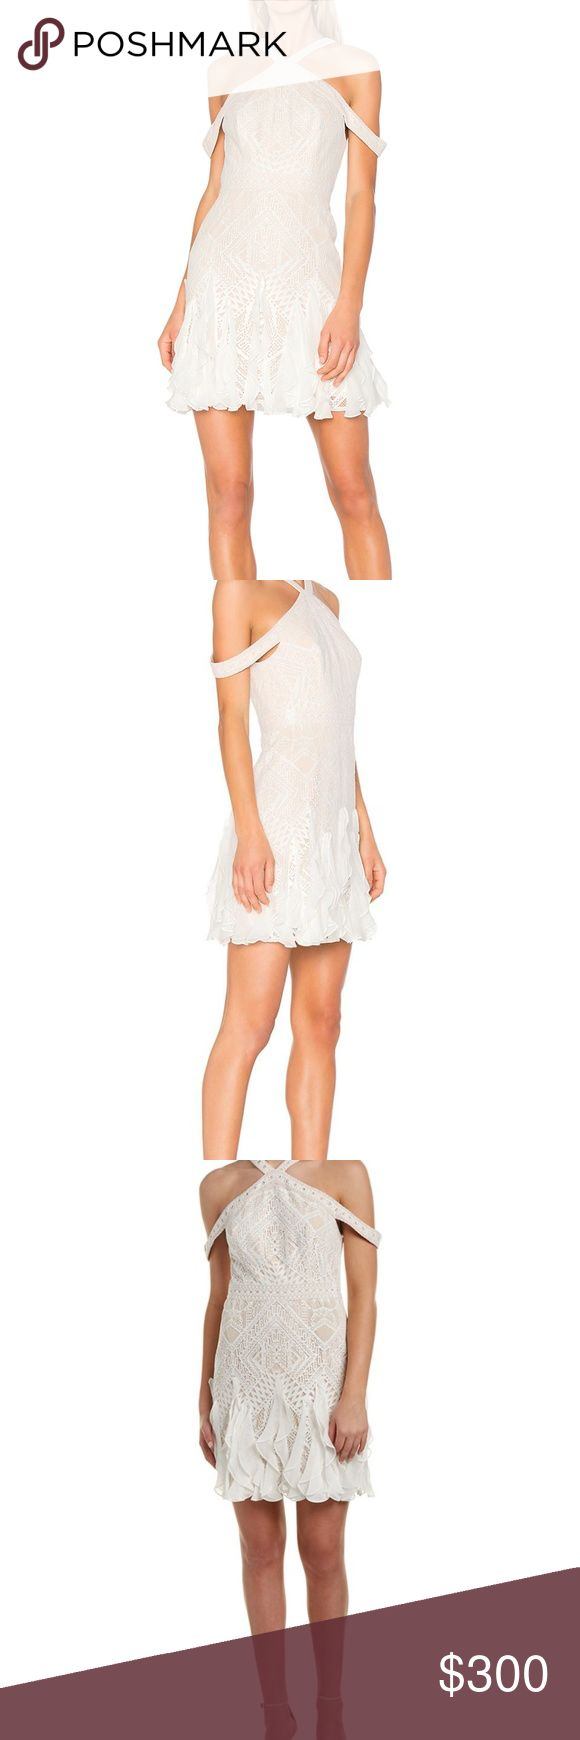 """NWT BCBG Leighann Cold-Shoulder Lace Dress With a shoulder-baring cut and flattering neckline, this party-ready dress has been crafted from textural lace with playful ruffles around its skirt.  Concealed back zipper closure Fabric body: 55% cotton, 45% nylon lace; fabric 2; 100% silk chiffon; fabric 3: 100% polyester mesh; lining: 91% polyester, 9% spandex Washable, dry clean recommended Mid-weight, stretch fabric Hits above the knee True to fit Model is approximately 5'9"""" (175cm) and…"""